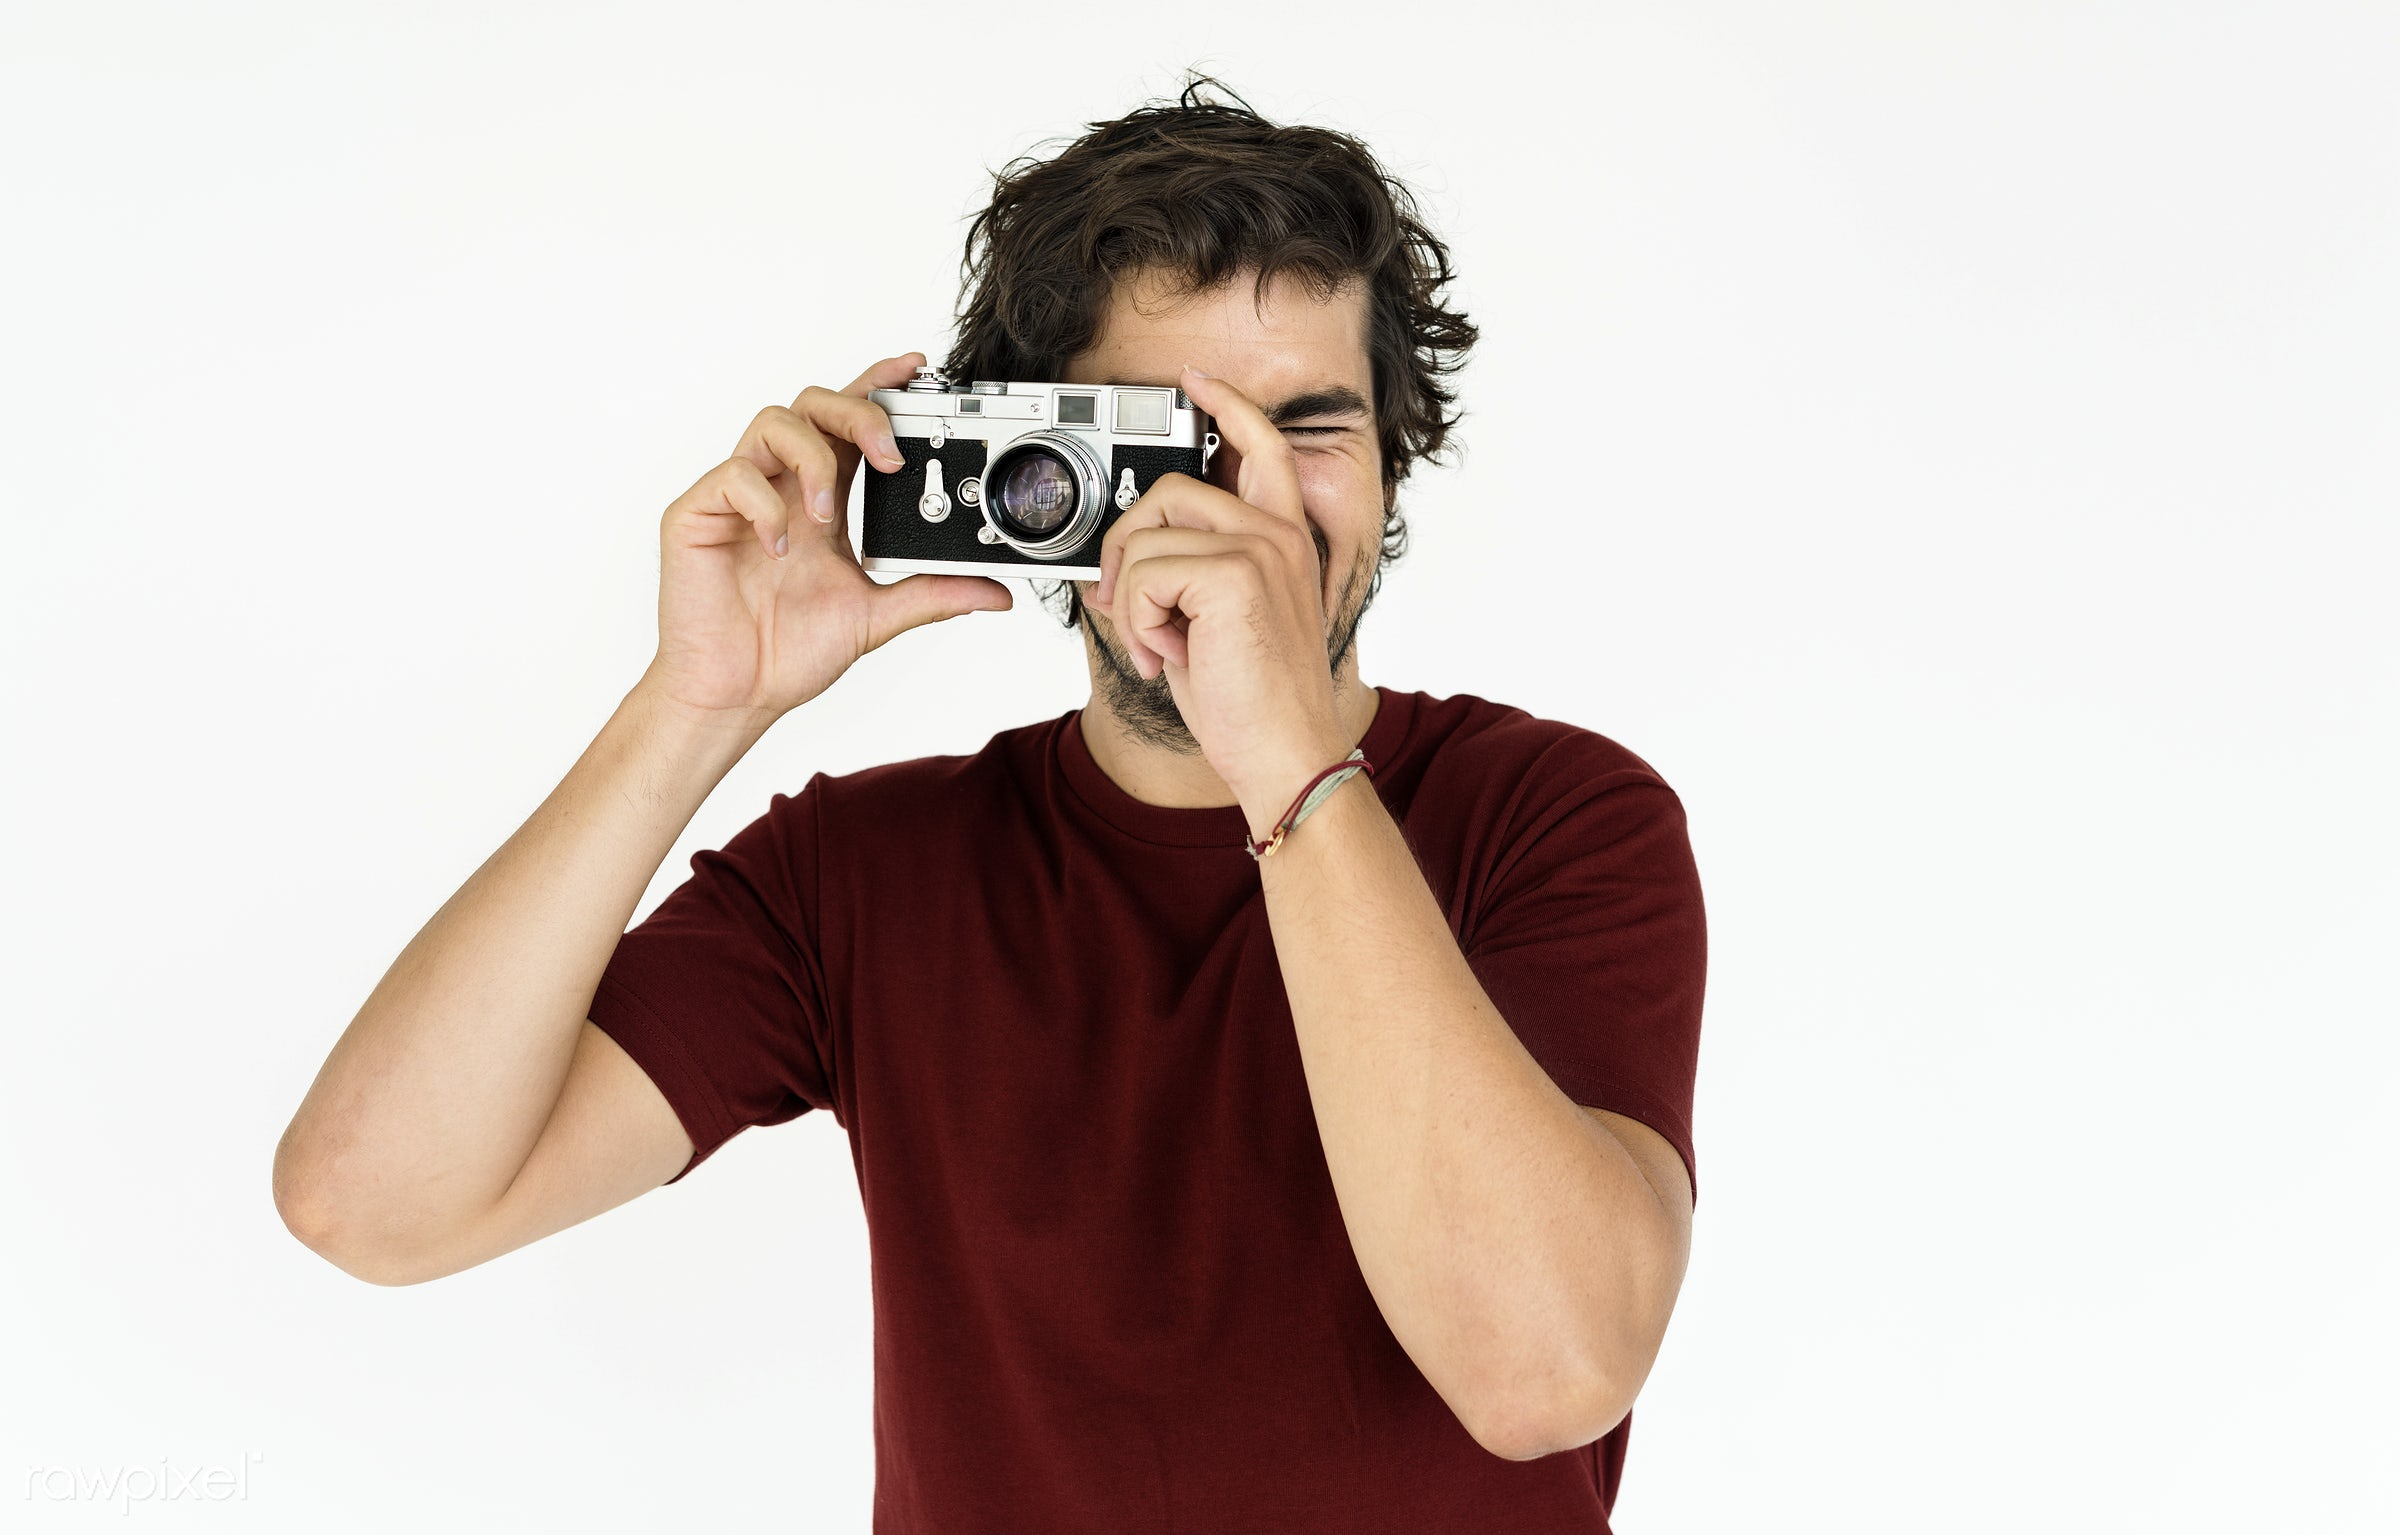 studio, expression, person, isolated on white, snap, recreation, photography, t-shirt, casual, photographer, taking photo,...